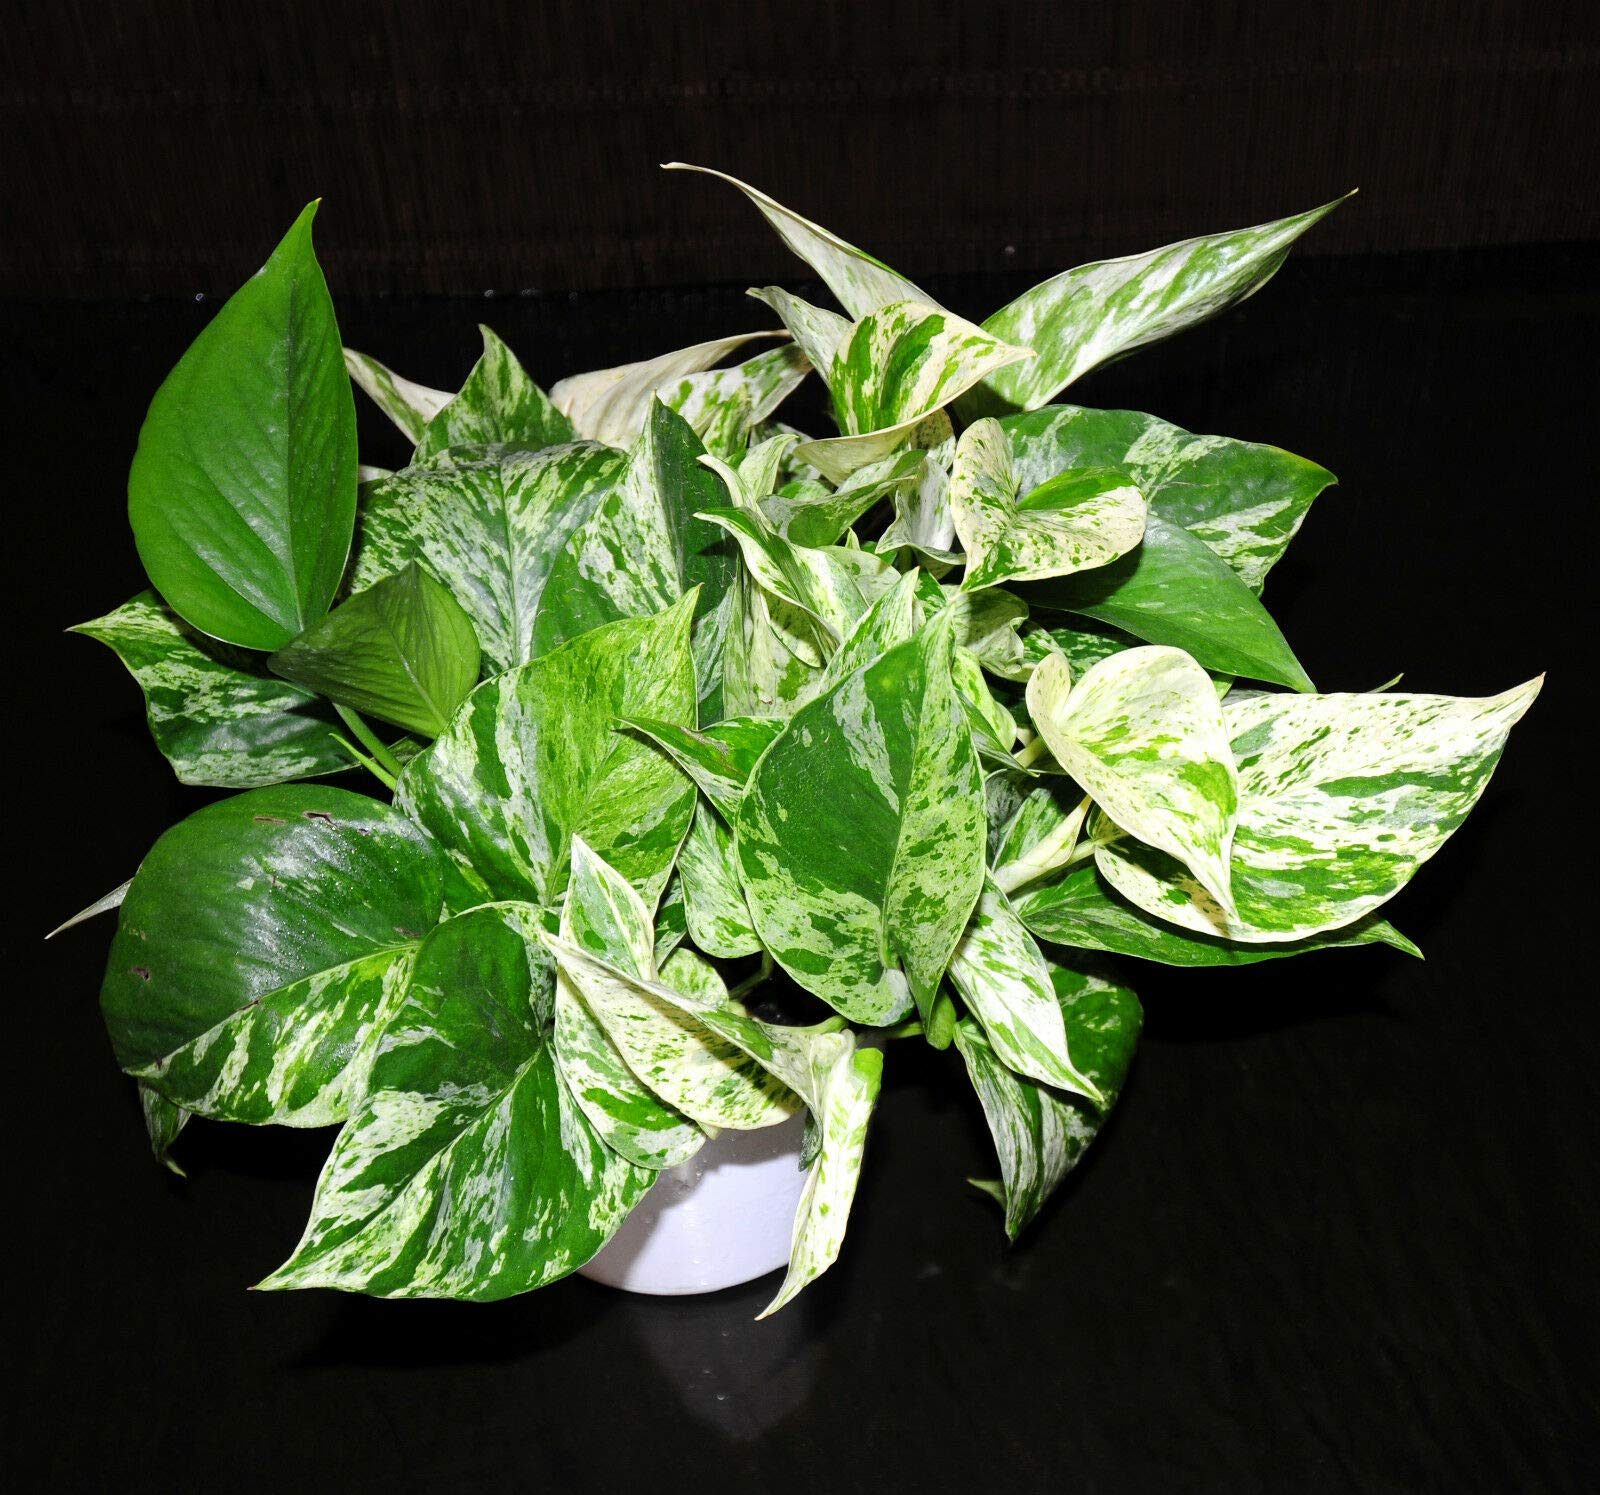 Marble Queen Pothos 6'' Pots Easy Tropical Vining House Plant Super Large & Full (Premium Quality) by AY-Premium